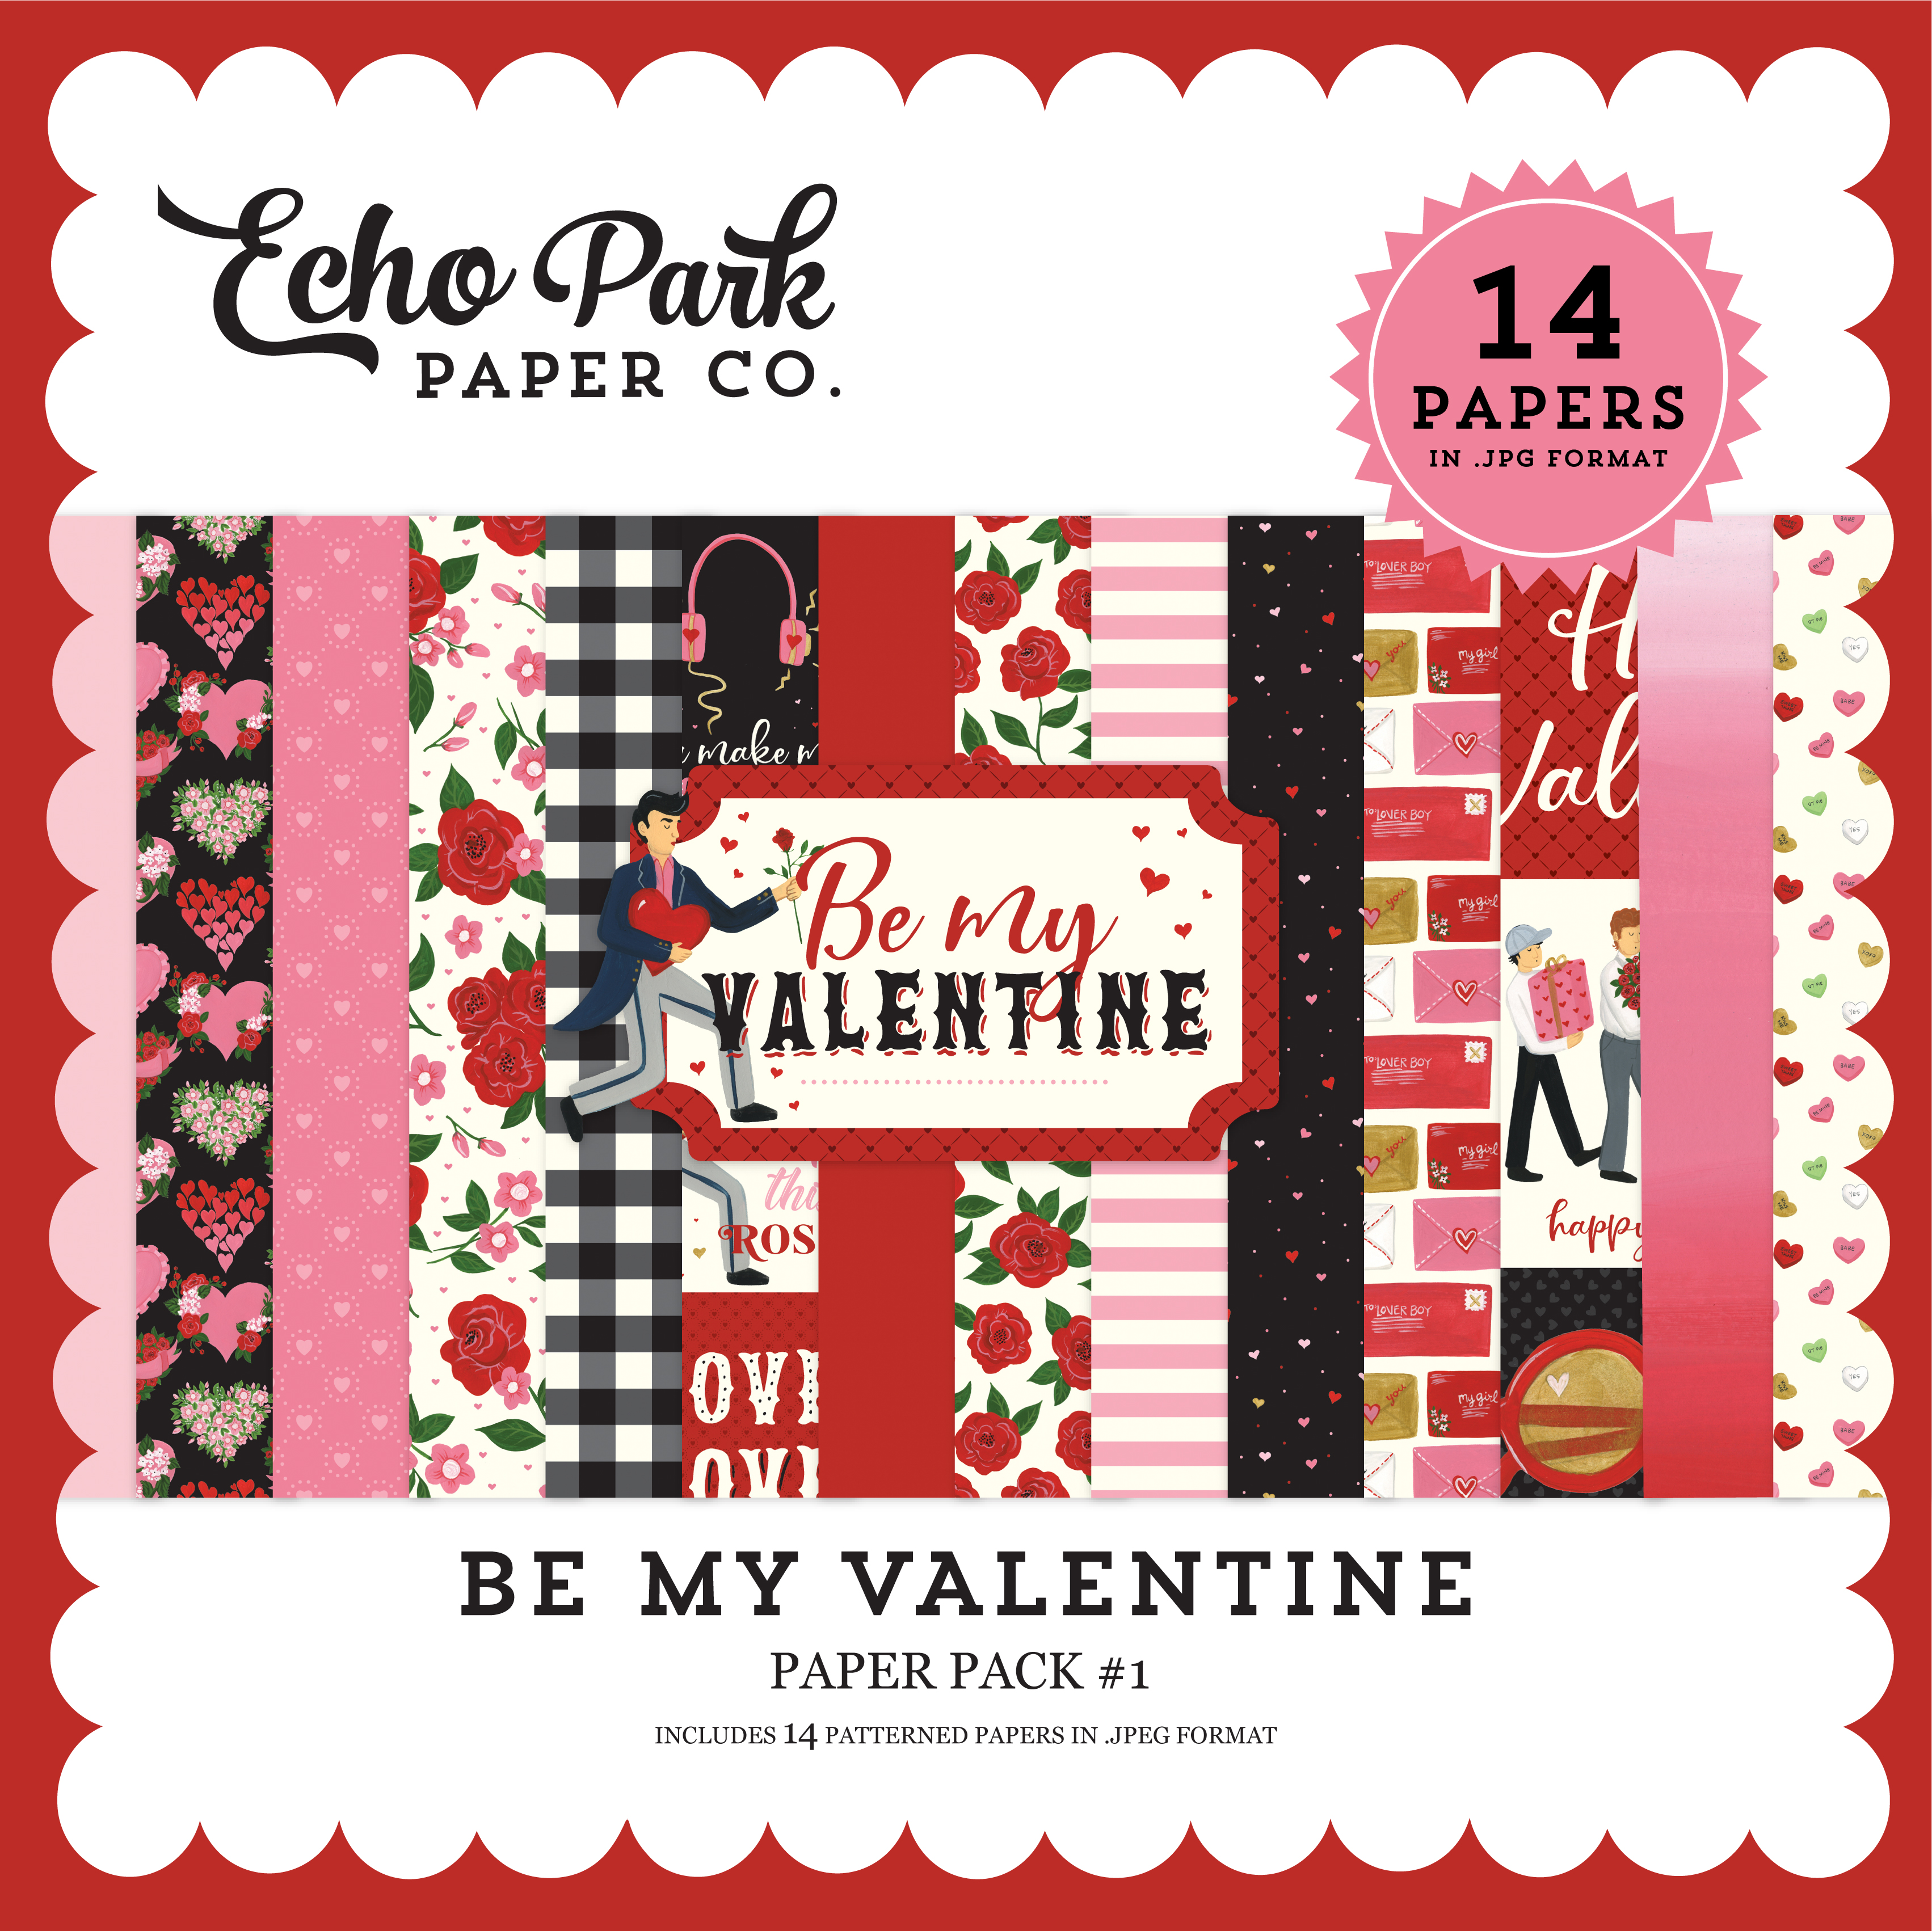 Be My Valentine Paper Pack #1